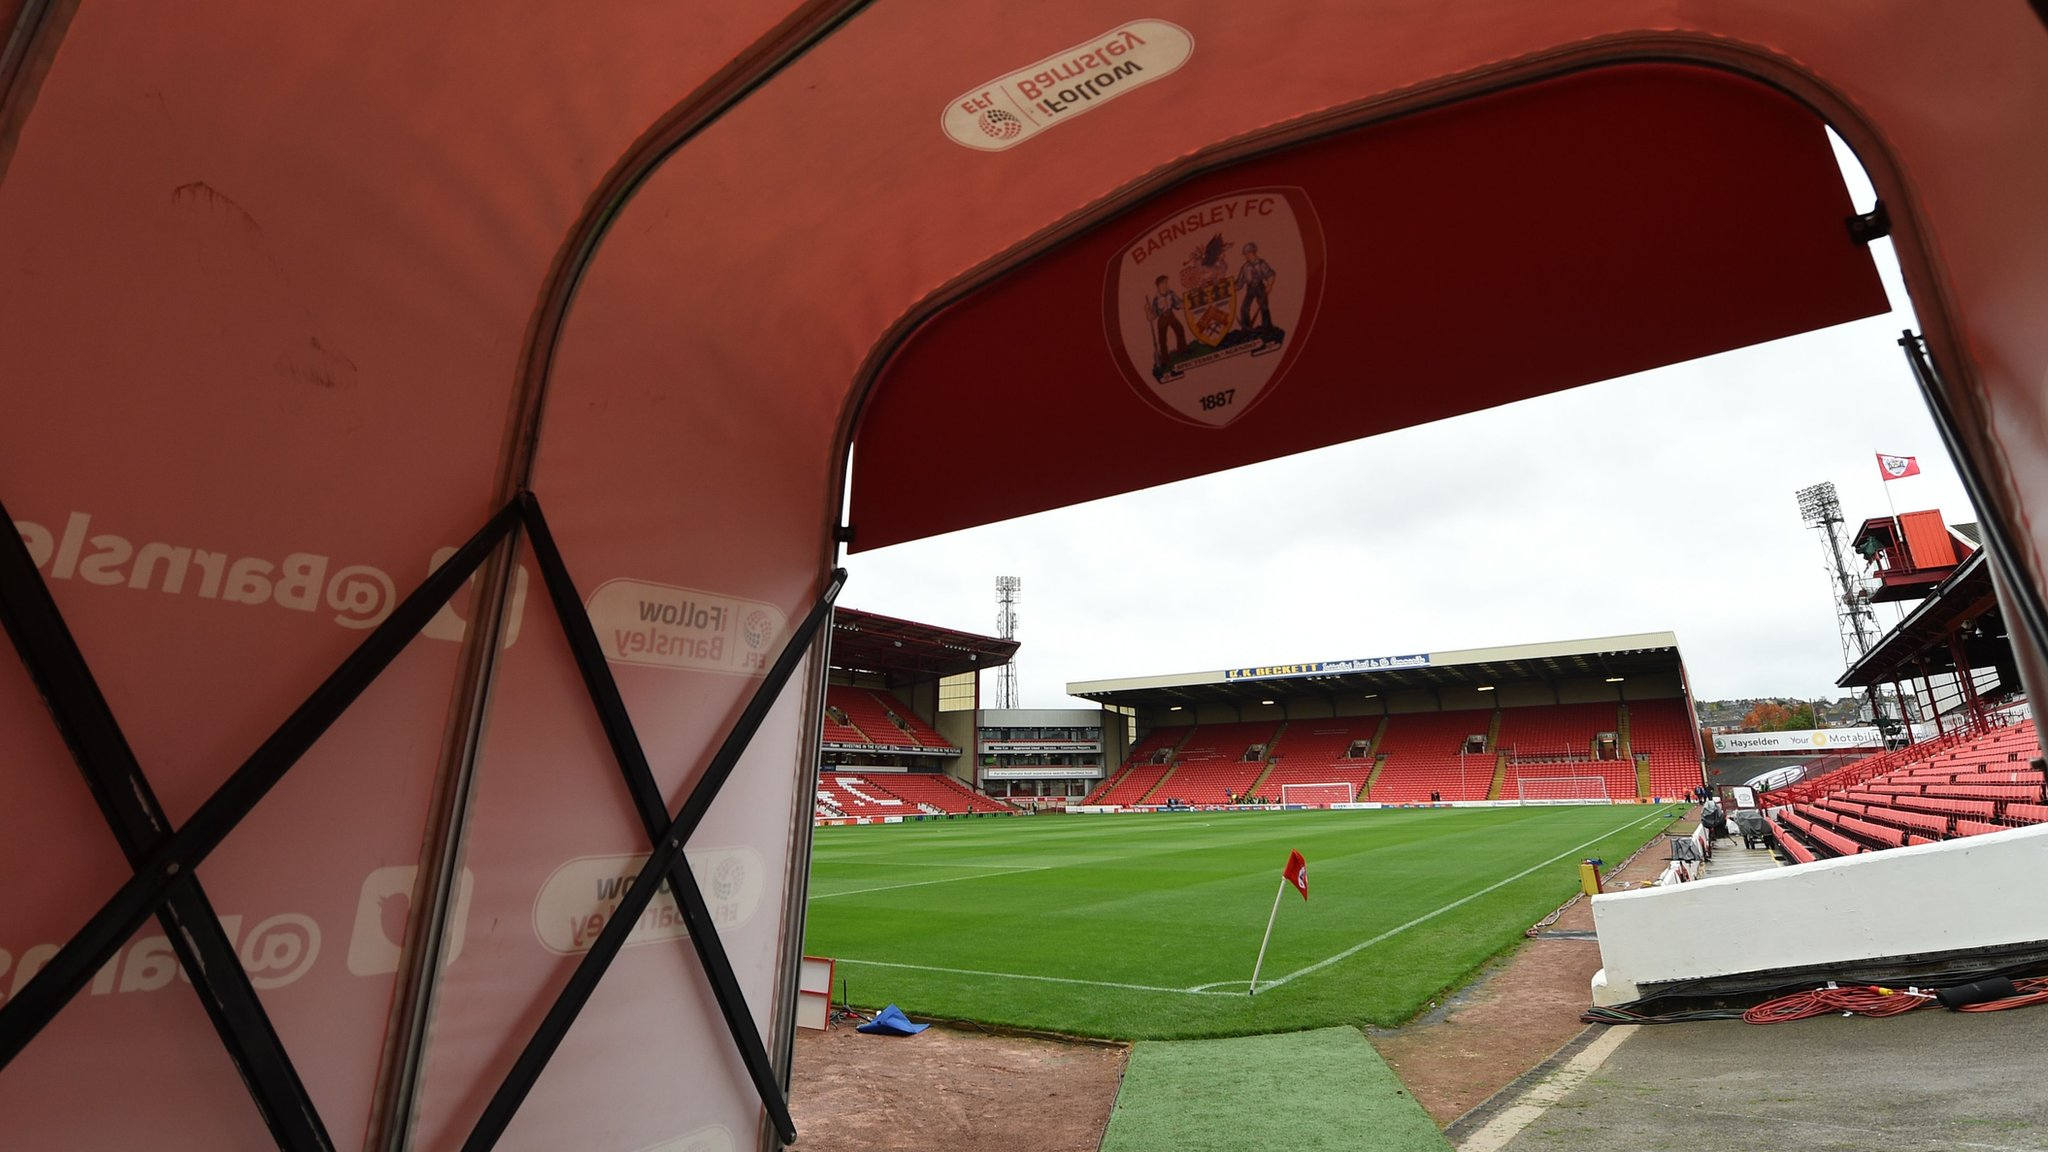 Barnsley: Man arrested and bailed over 'tunnel row' at League One club